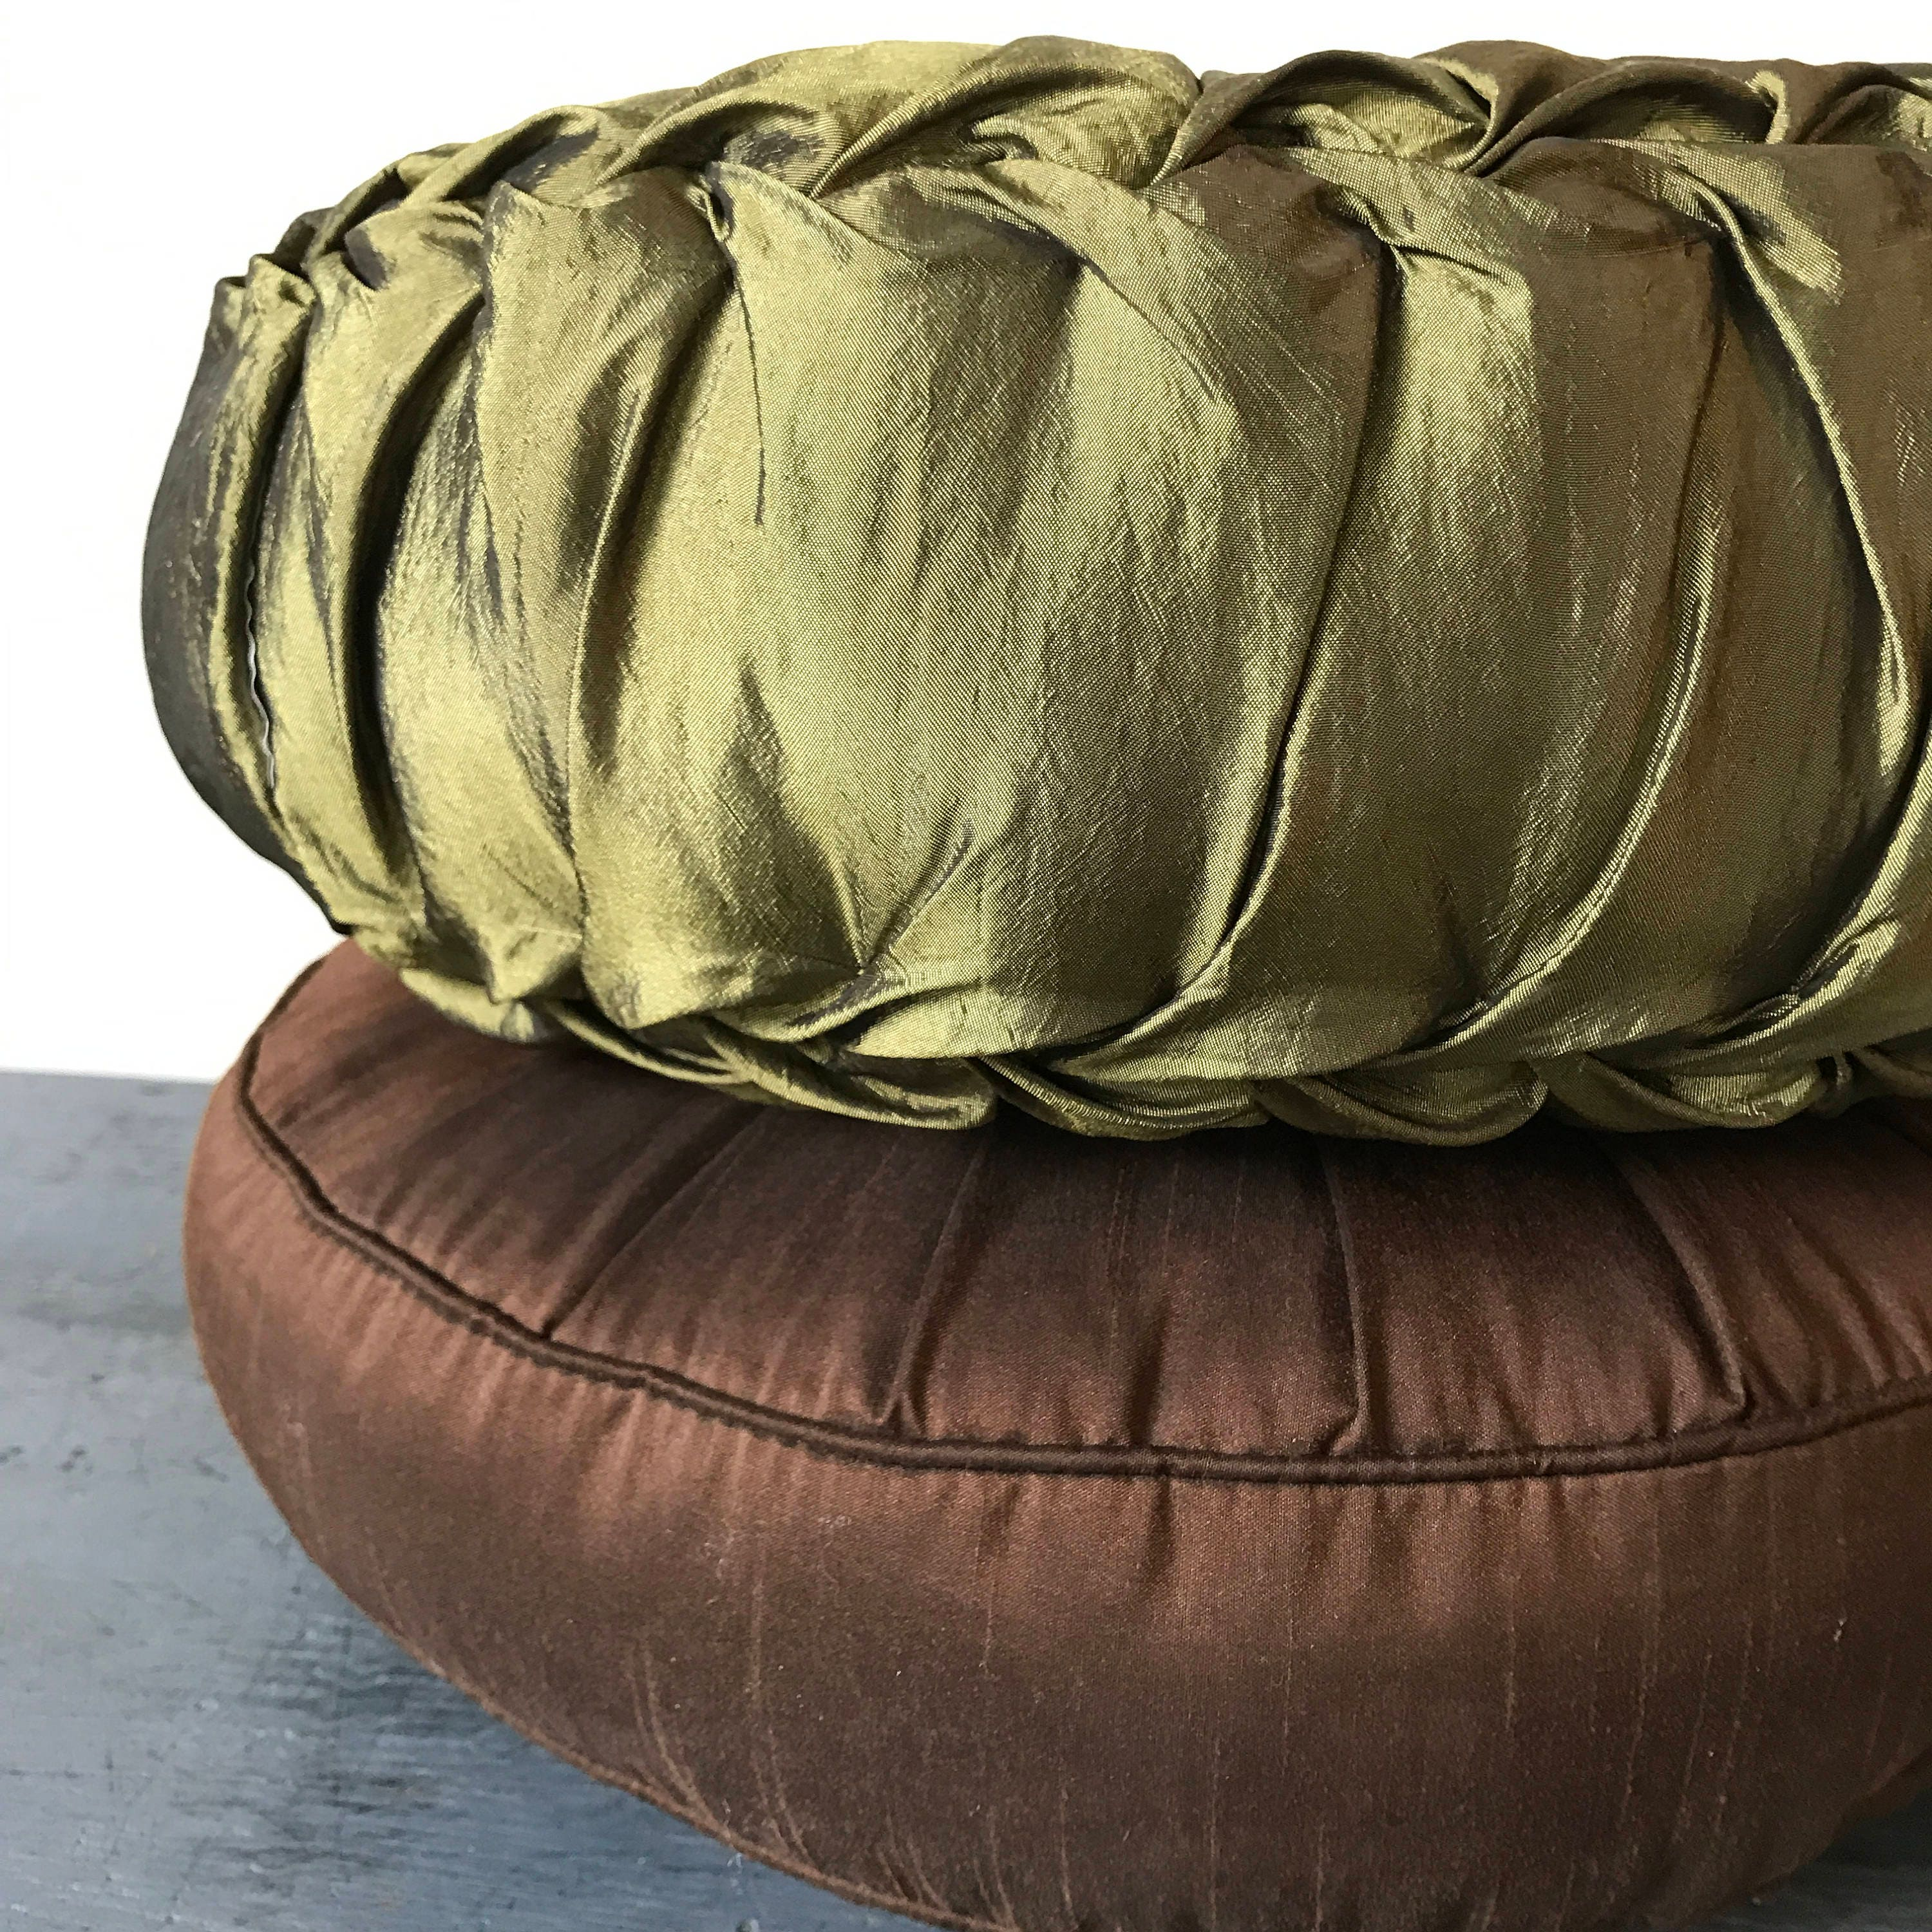 Throw Pillow Round : RESERVED // vintage throw pillow - round ruched cushion - olive green